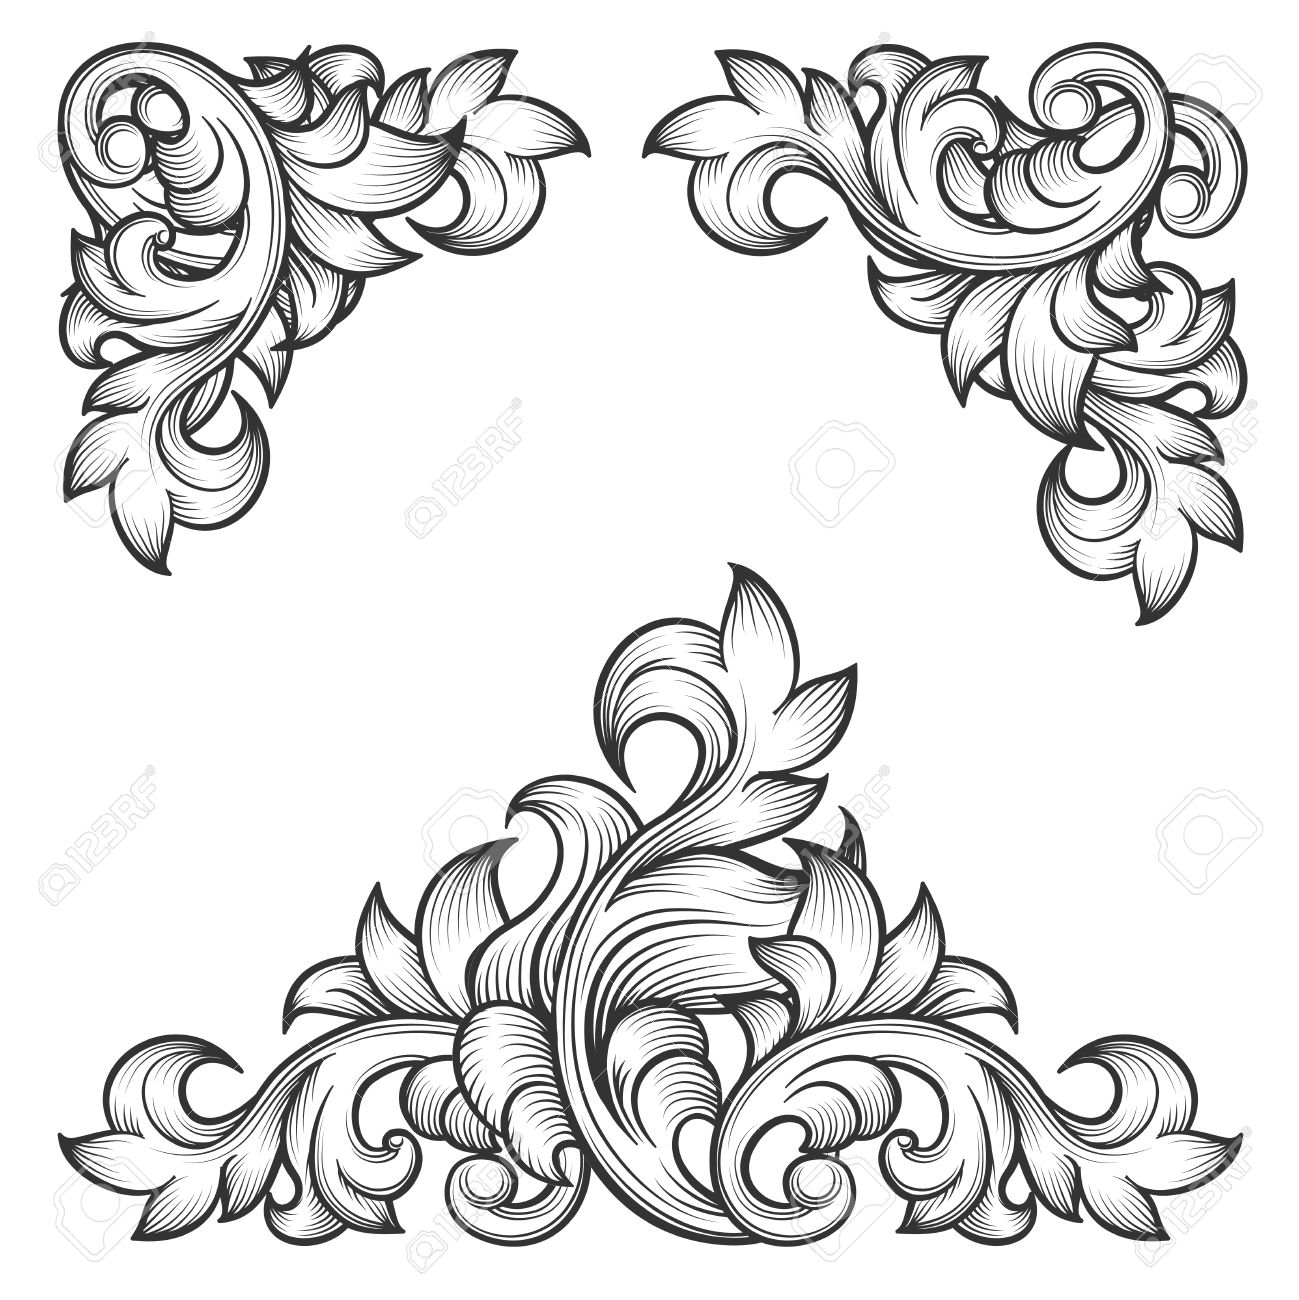 162,508 Motif Stock Vector Illustration And Royalty Free Motif Clipart.